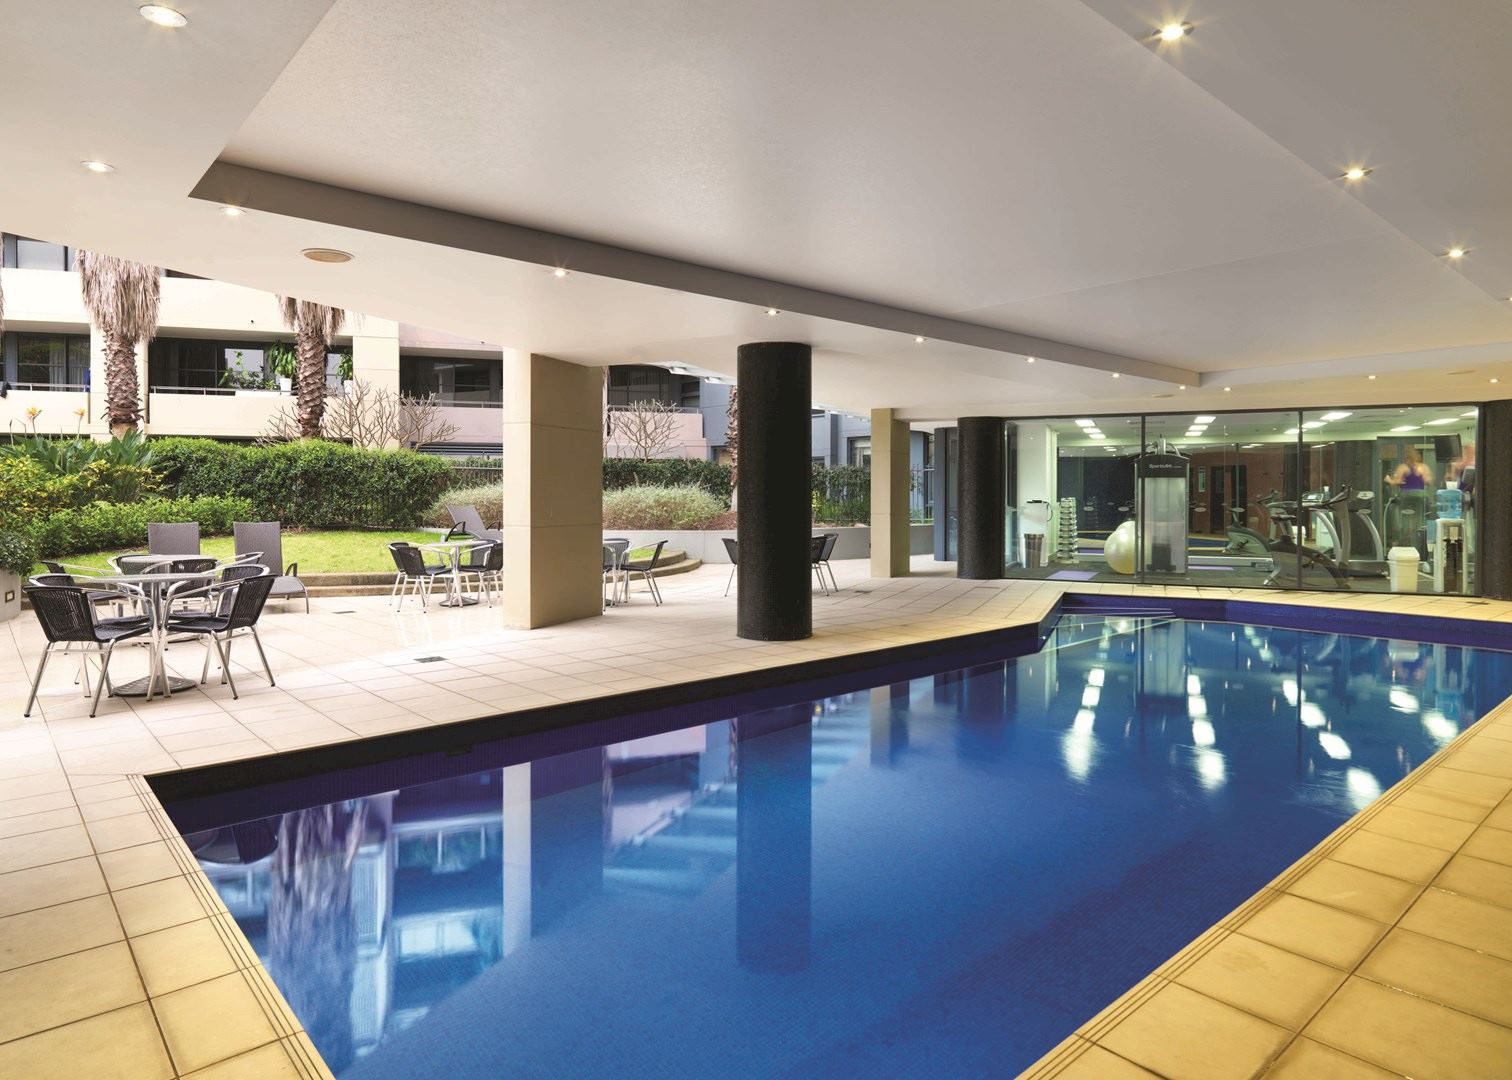 Adina Apartment Hotel Sydney, Harbourside | Audley Travel